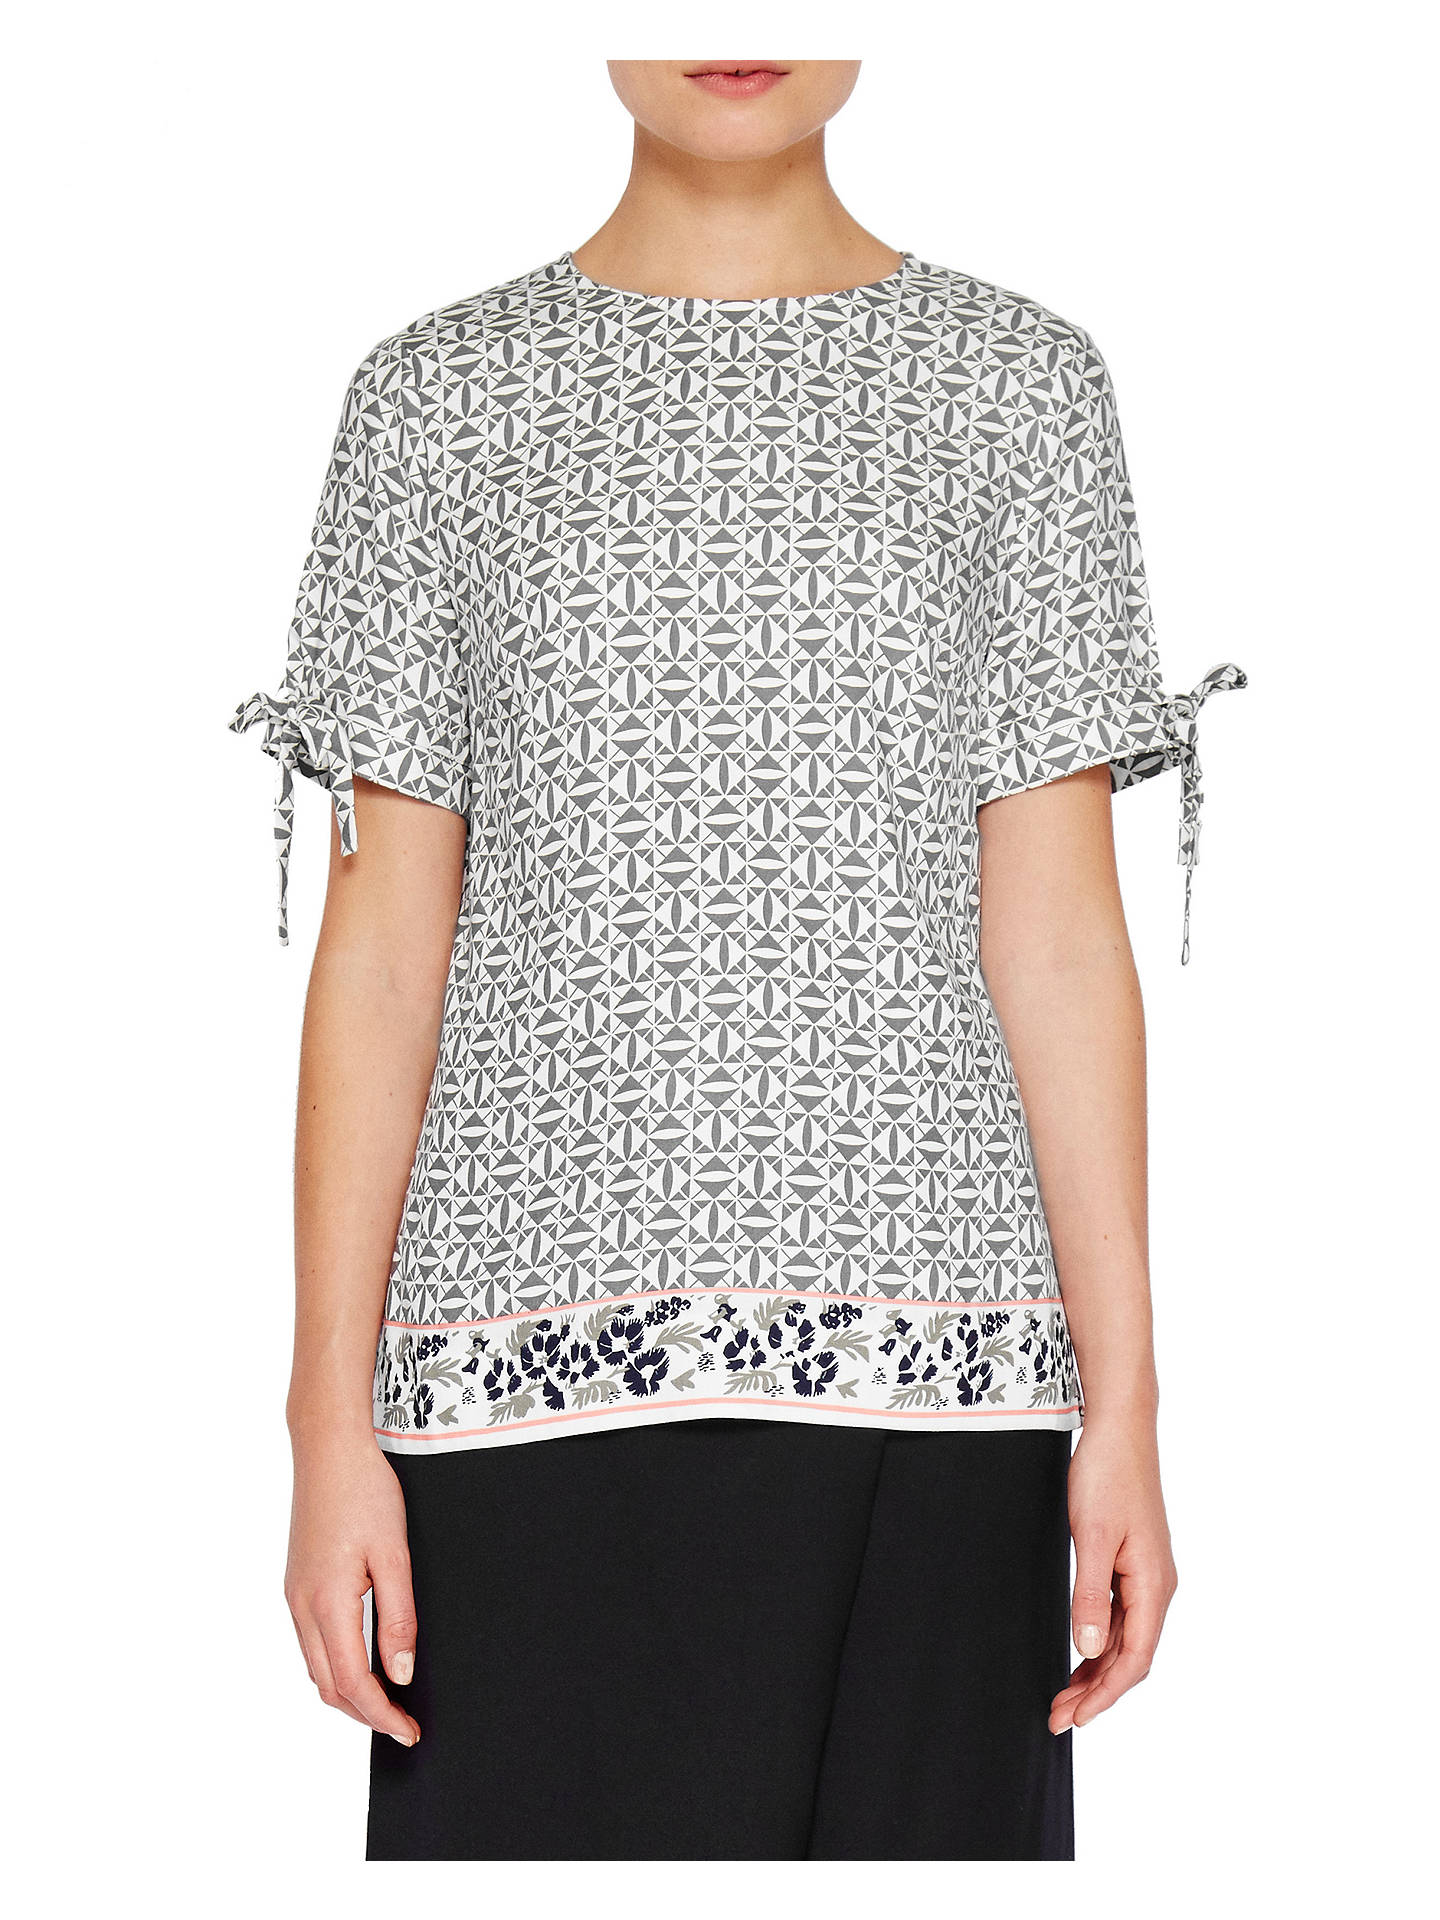 8a3dcbeeaeeb61 BuyTed Baker Colour By Numbers Laylei Geo Floral Print T-Shirt